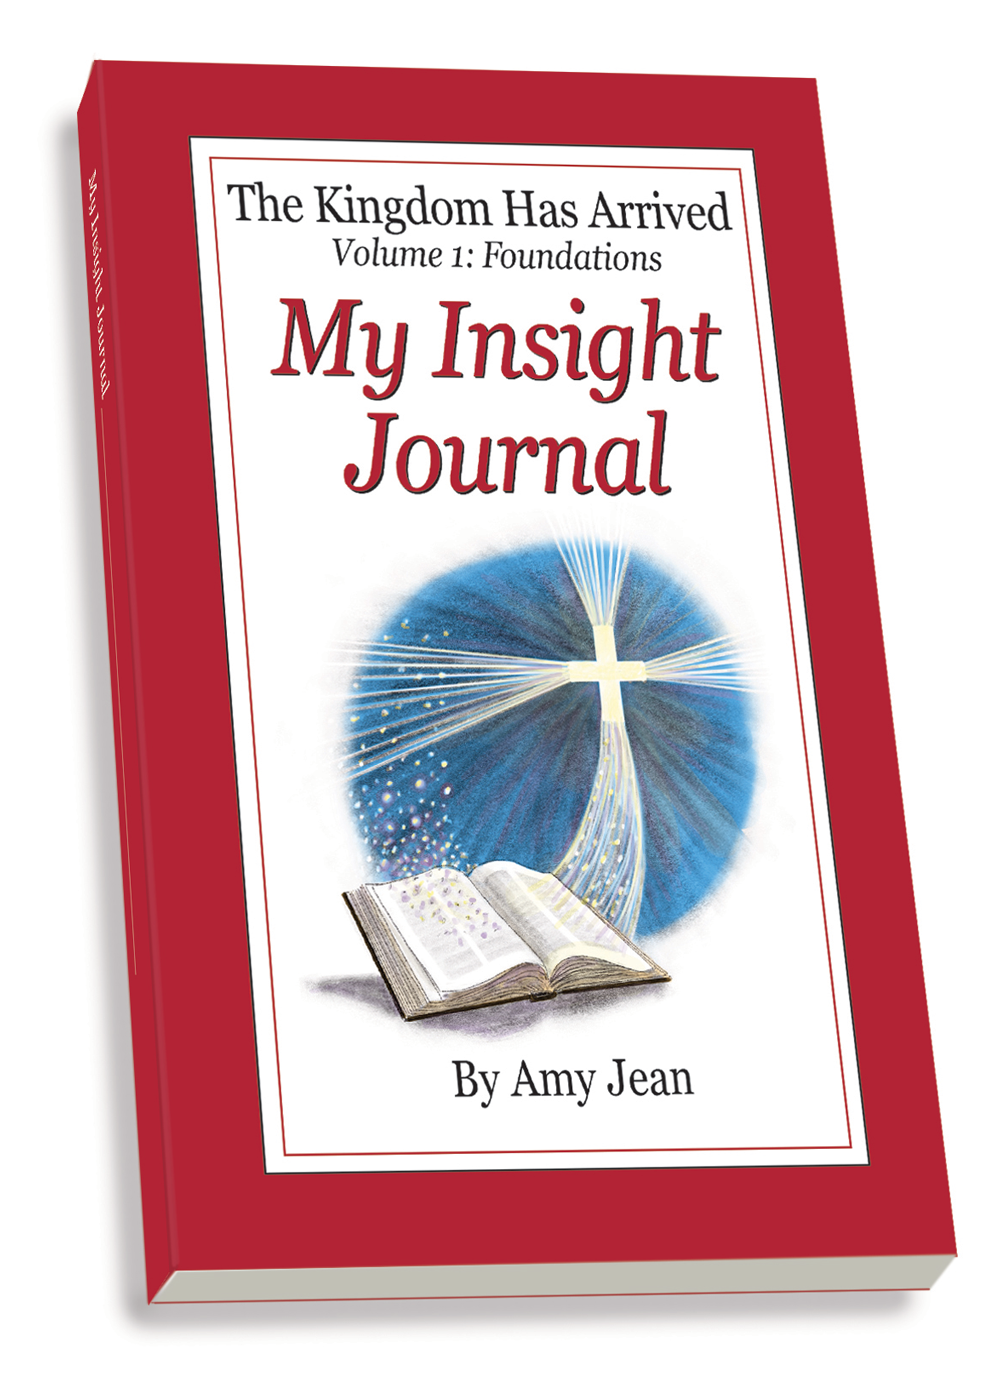 My Insight Journal by Amy Jean